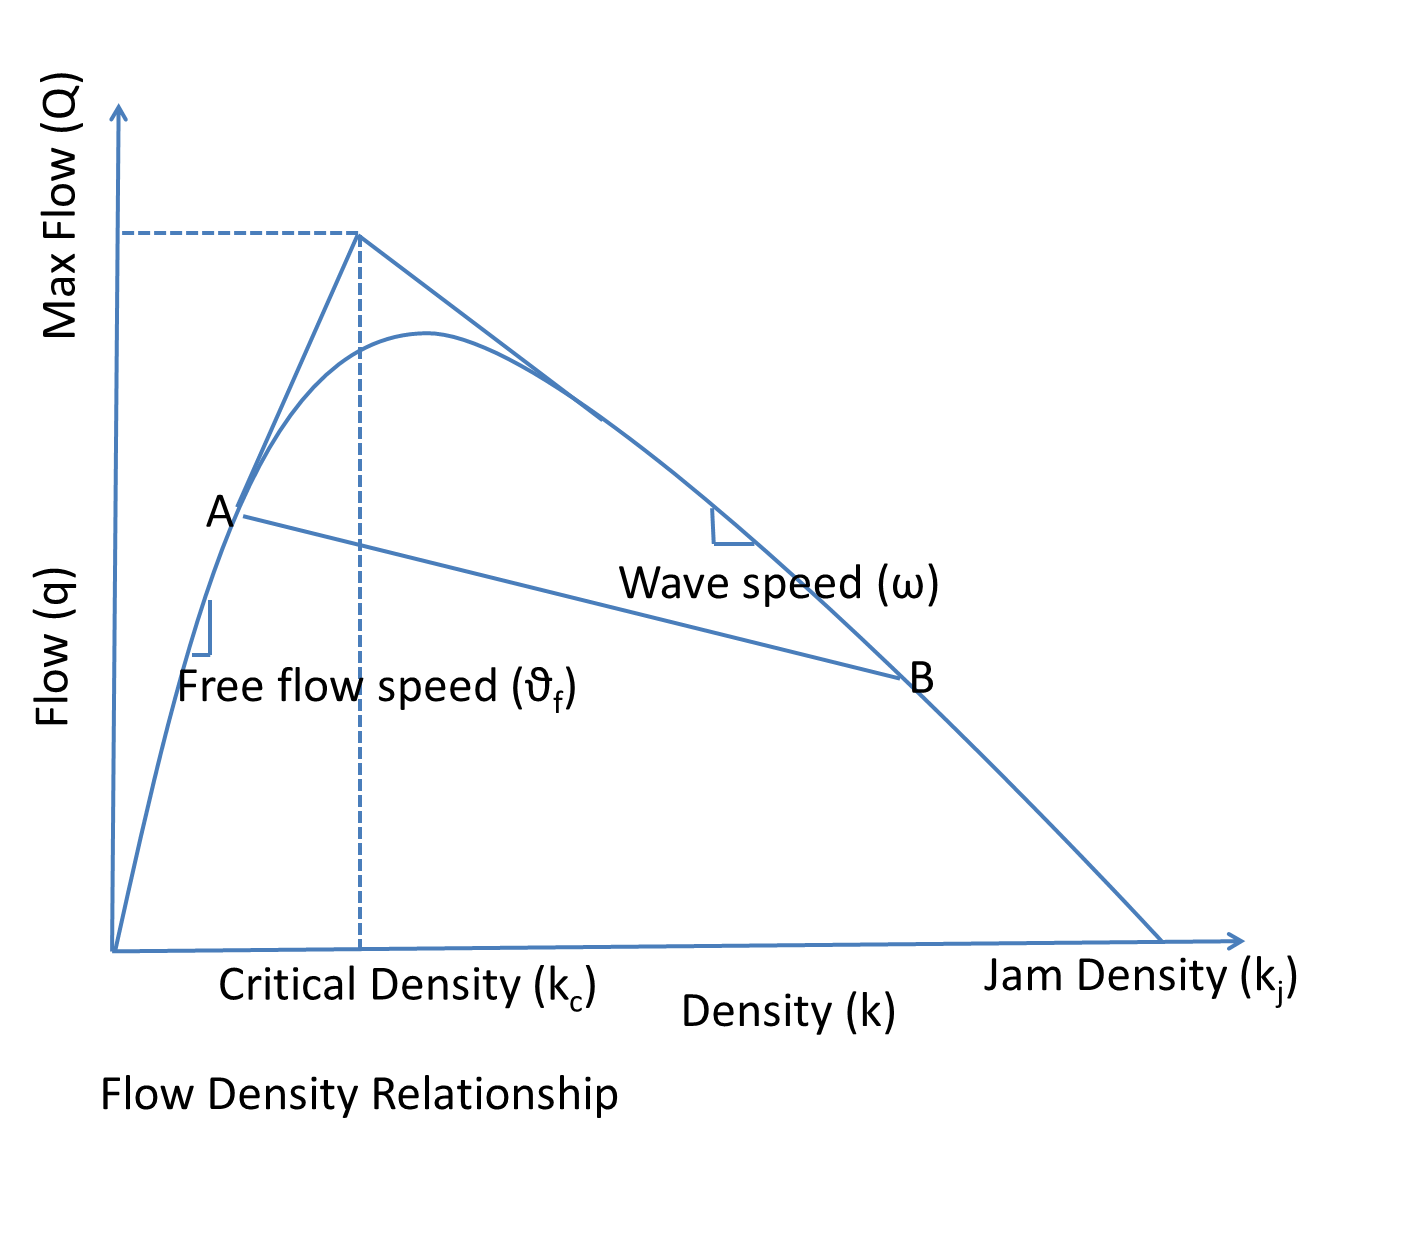 Flow Density relationship